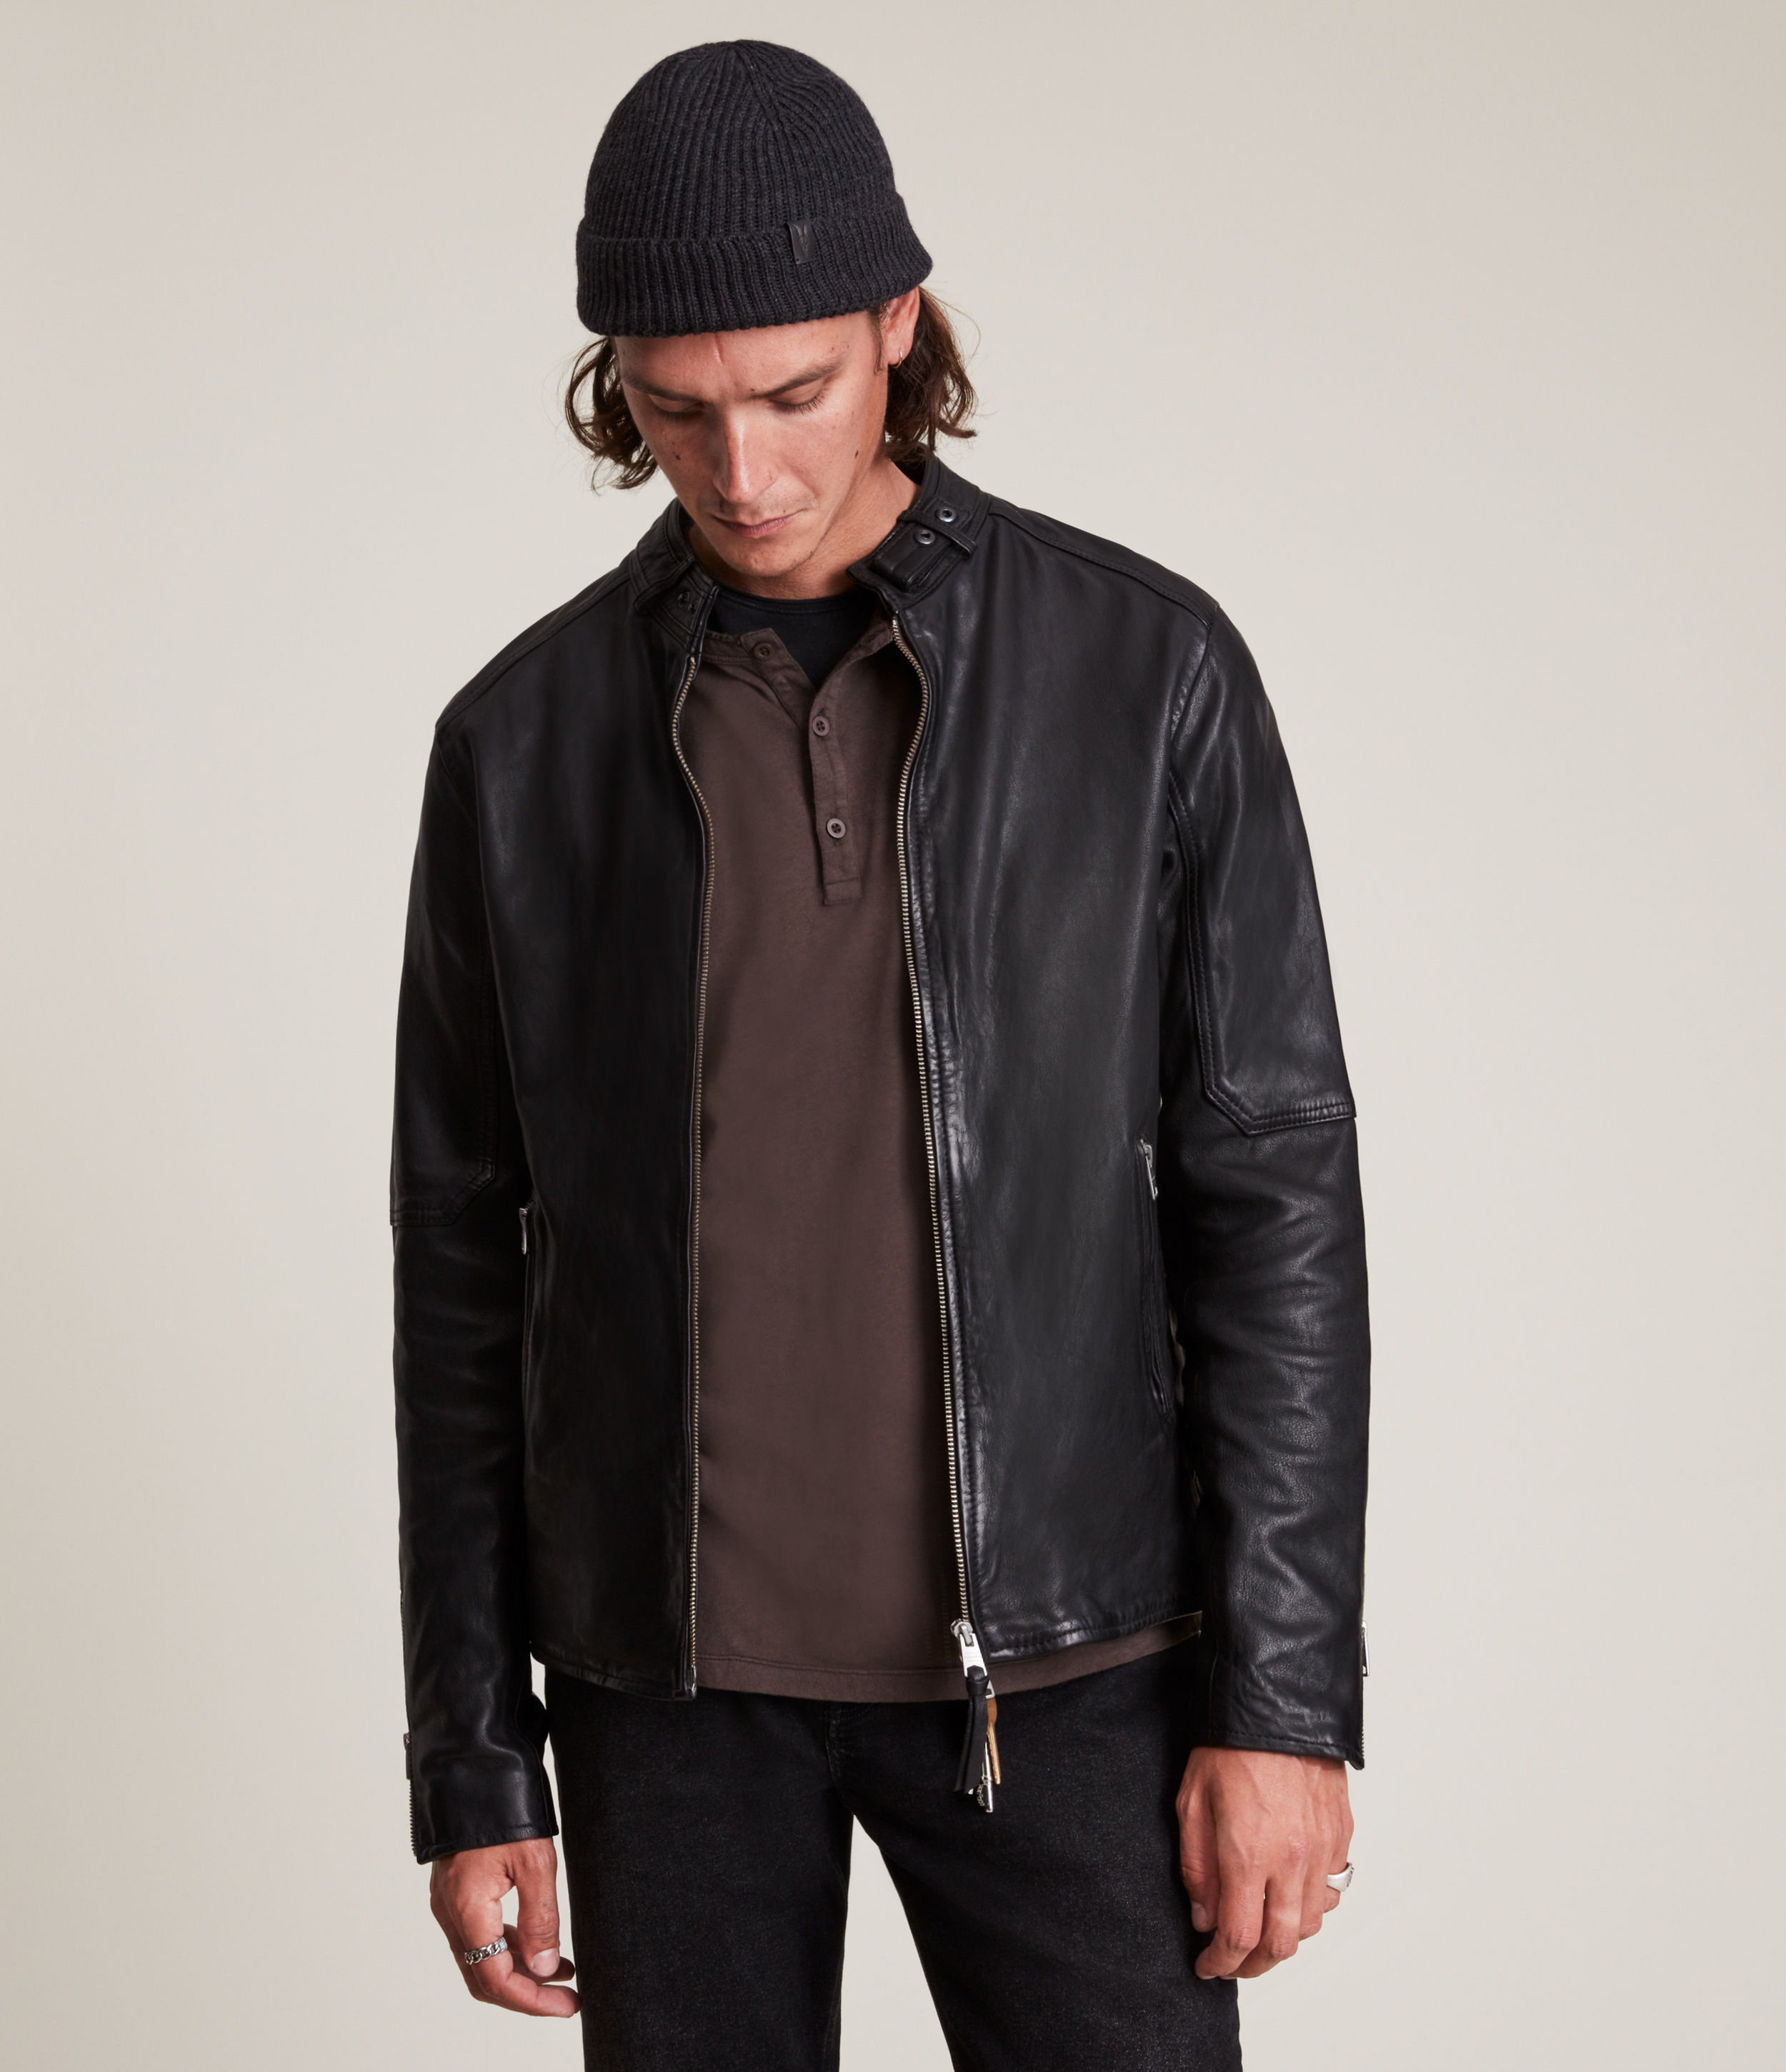 AllSaints Men's Leather Traditional Cora Jacket, Black, Size: XS